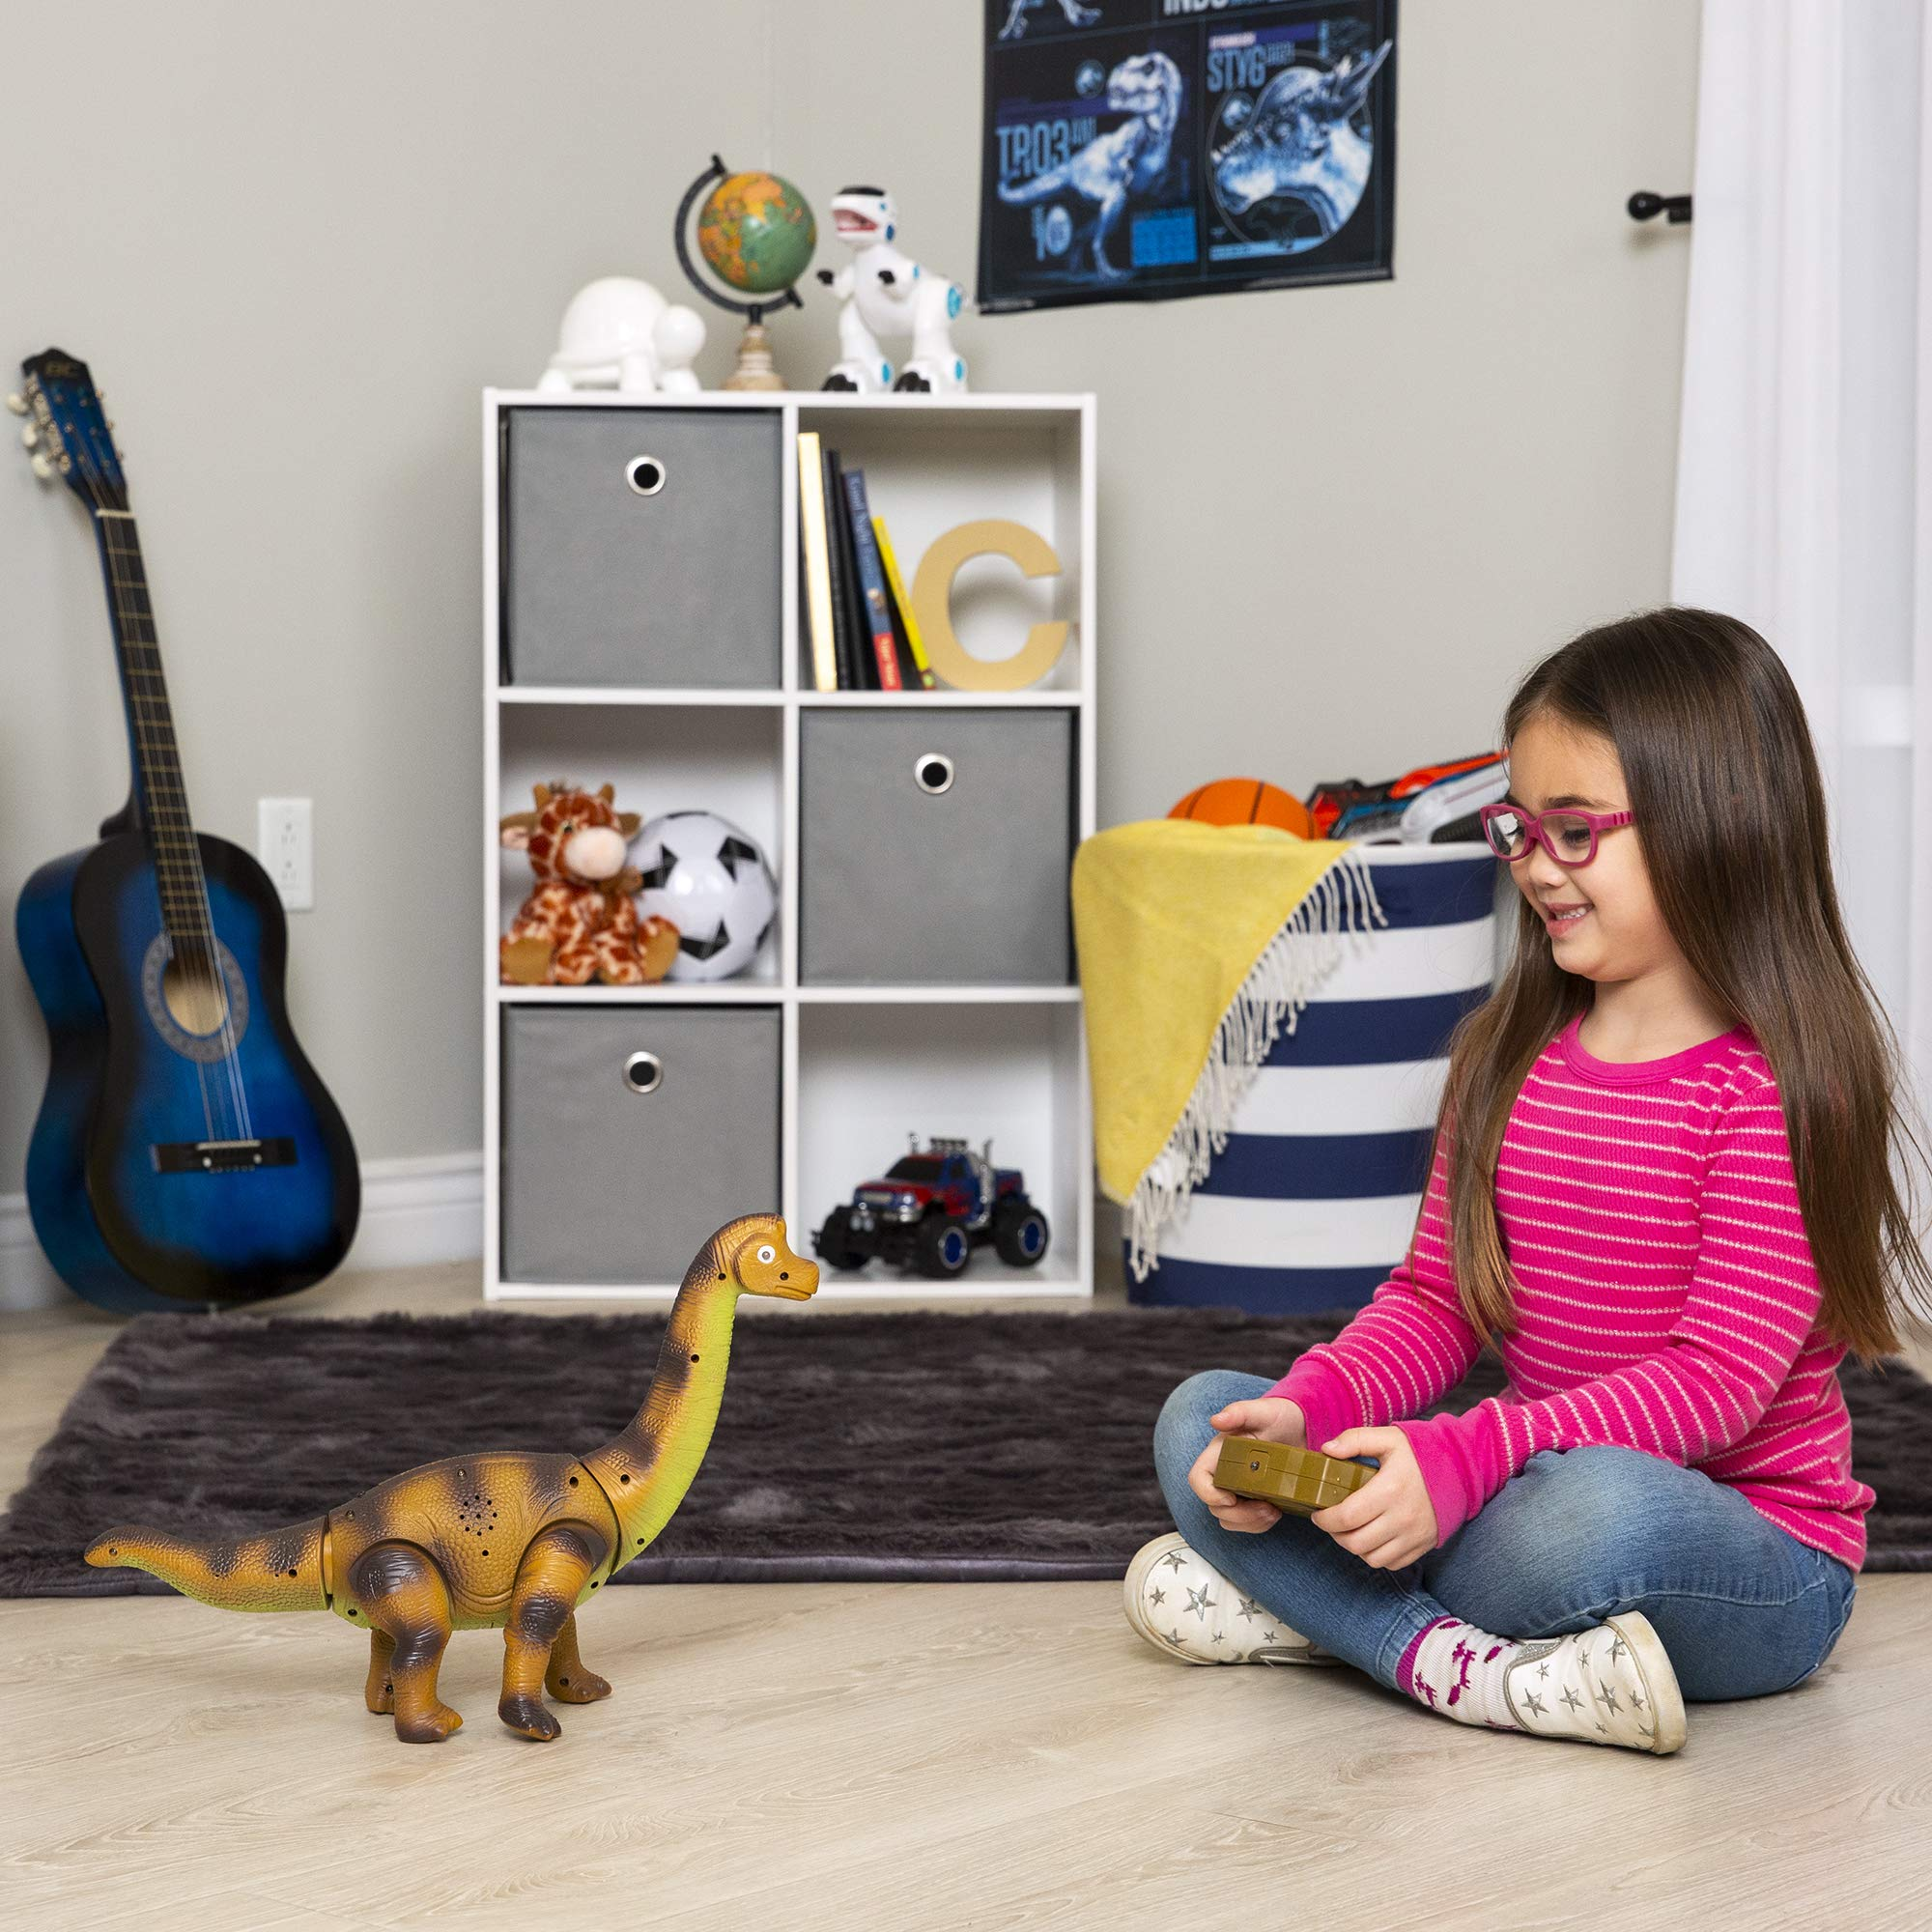 Best Choice Products 17.5in Kids RC Stomping Brachiosaurus Dinosaur Electric Animal Toy Robot w/ Light Up Eyes, Roaring Sounds, Swinging Head, Remote Control by Best Choice Products (Image #2)